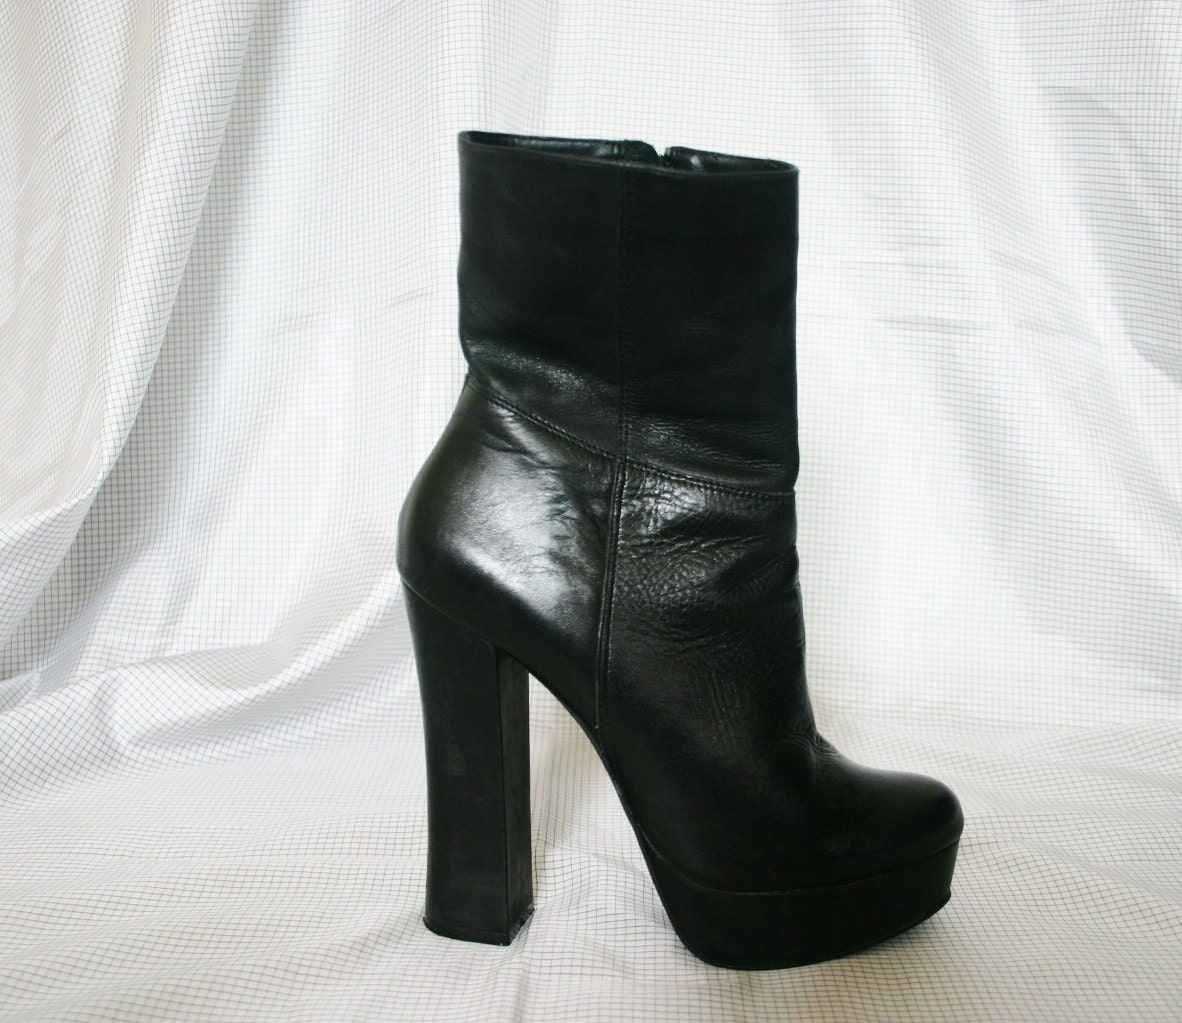 90s platform black leather high heel boots by